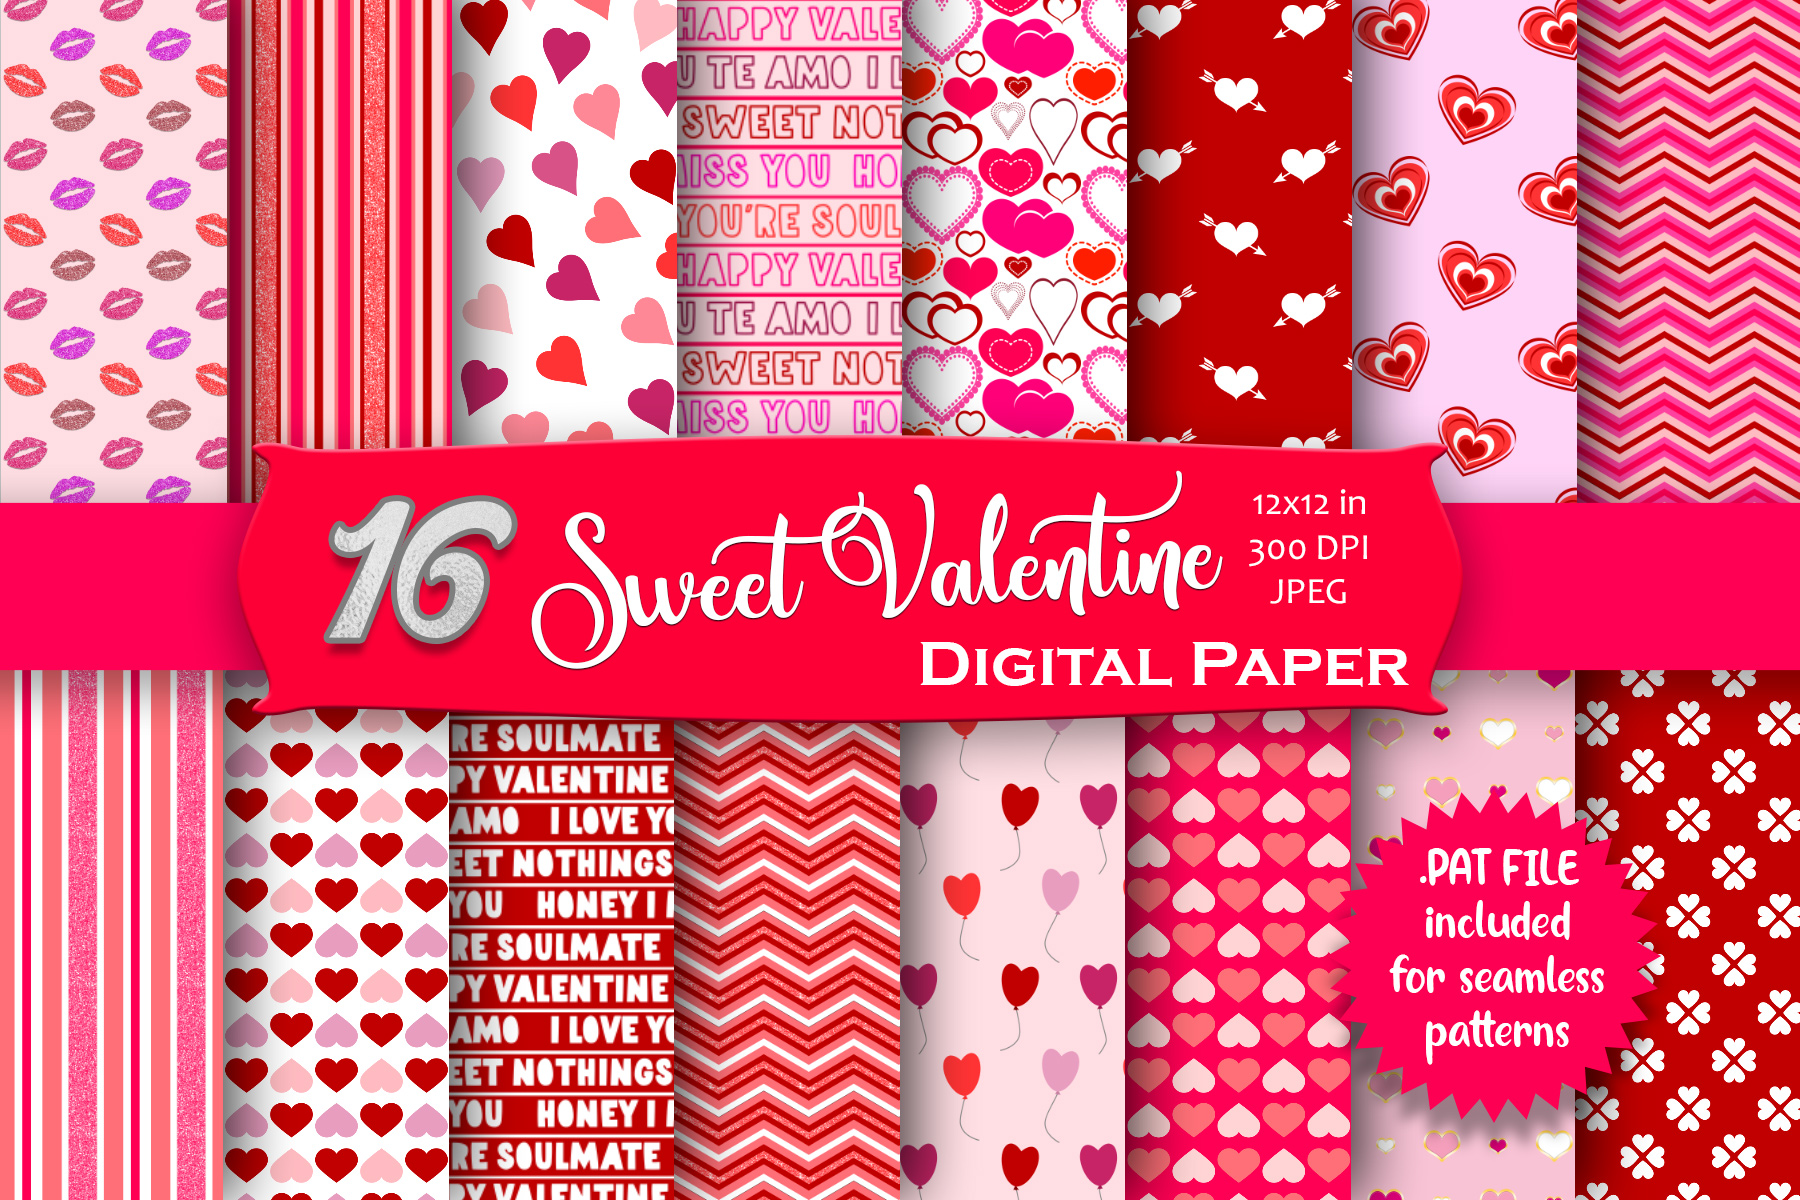 Download Free Sweet Valentine Digital Paper Pack Graphic By Mrn Digishop for Cricut Explore, Silhouette and other cutting machines.